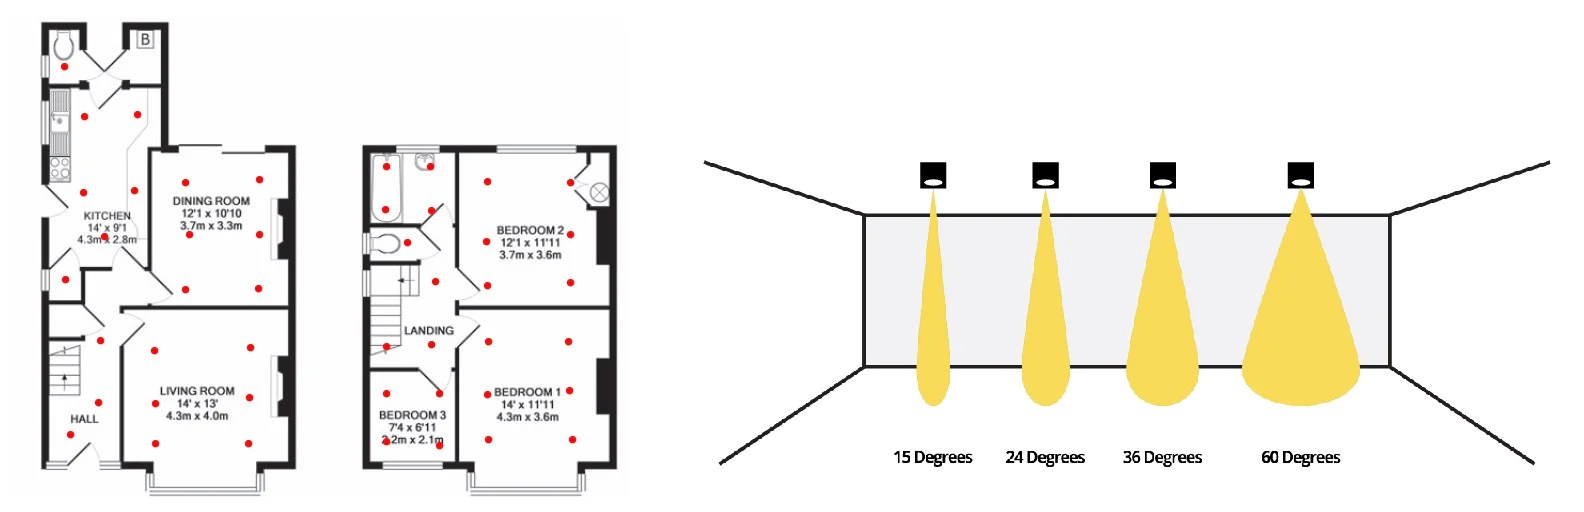 https thelightingoutlet com au blogs news how to choose the right downlight